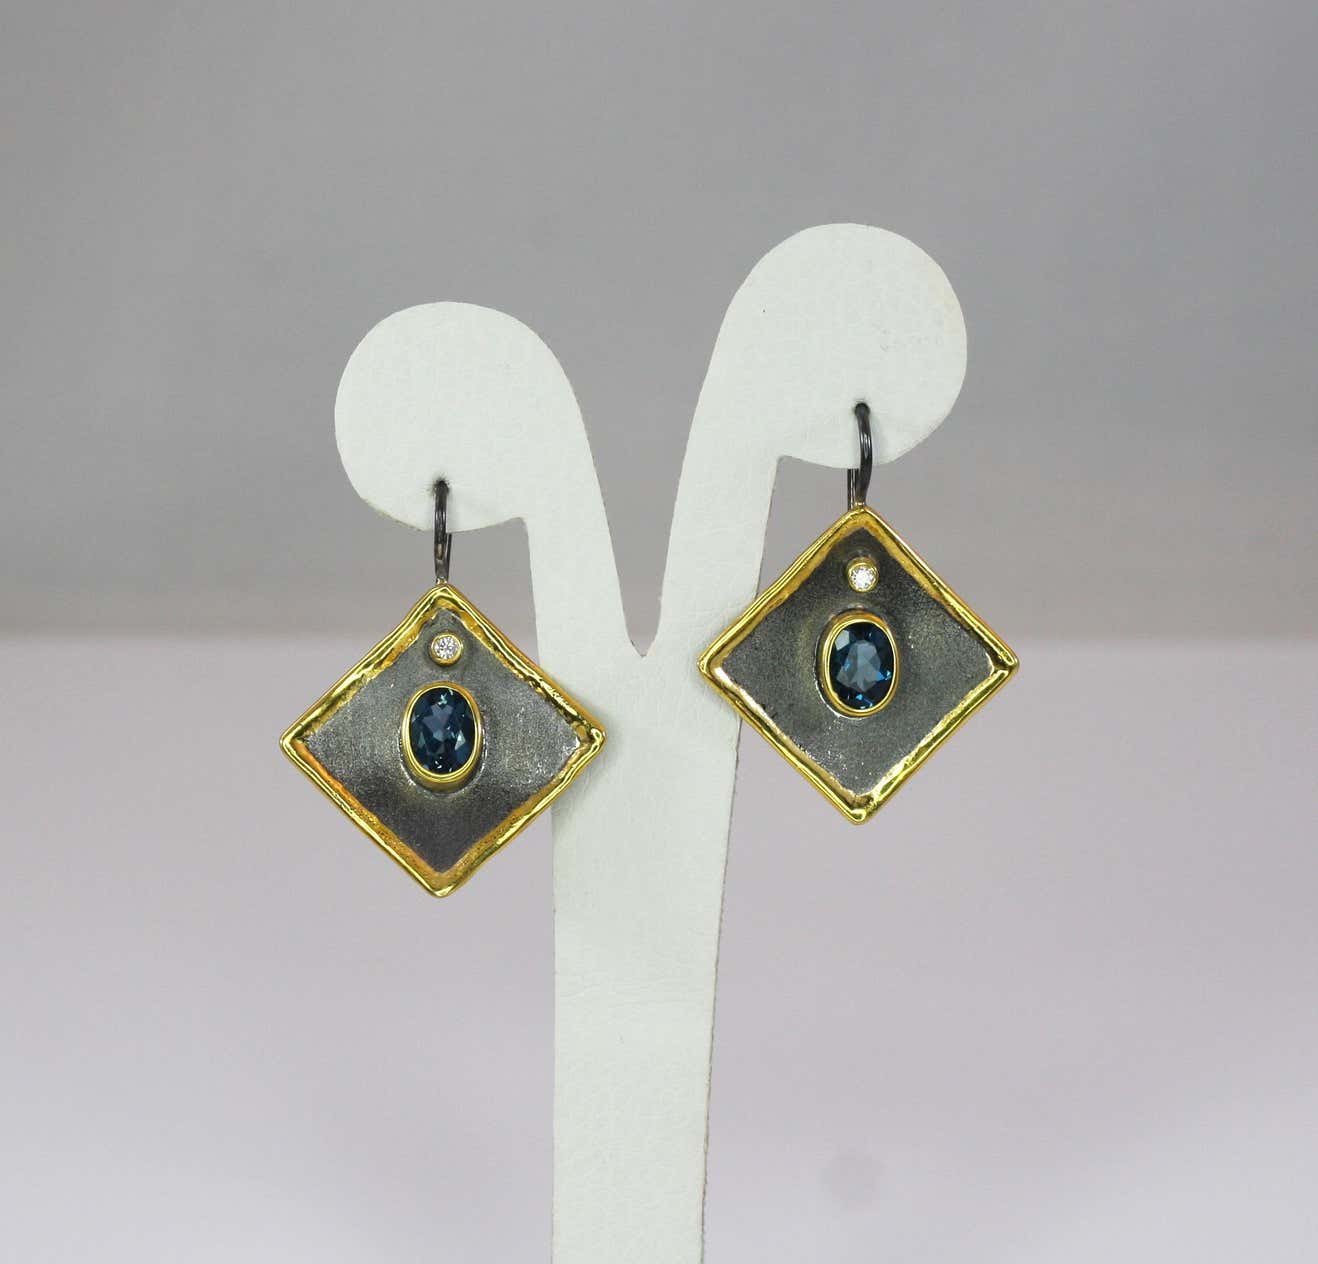 Eclyps Topaz Earrings in Fine Silver Finished with Rhodium and Gold